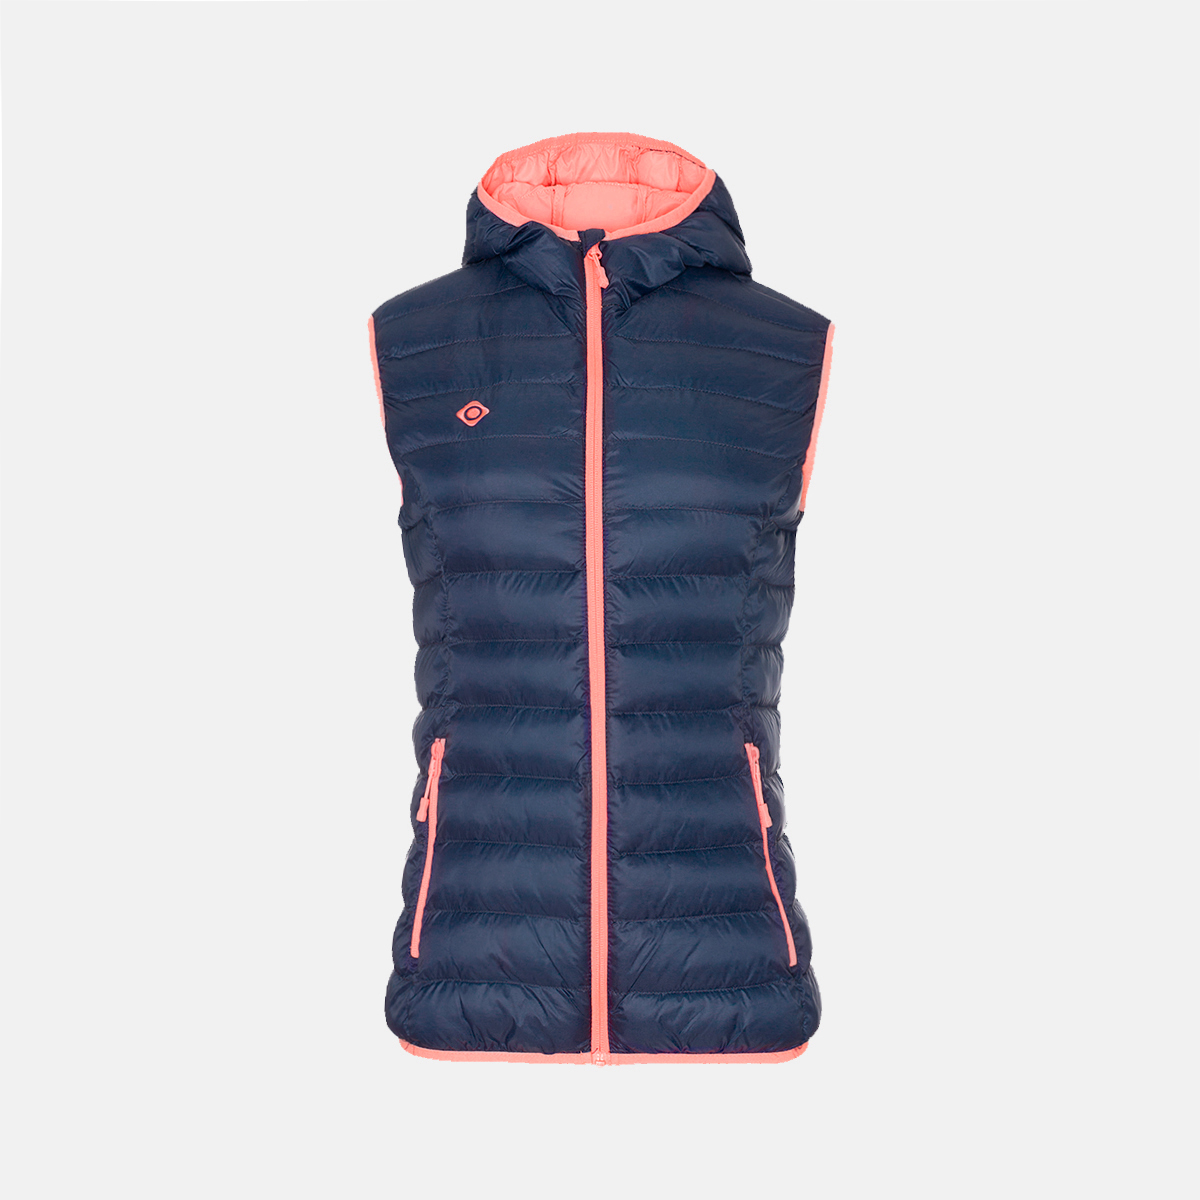 WOMAN'S CUMBRIA MOUNT-LOFT PADDED VEST BLUE